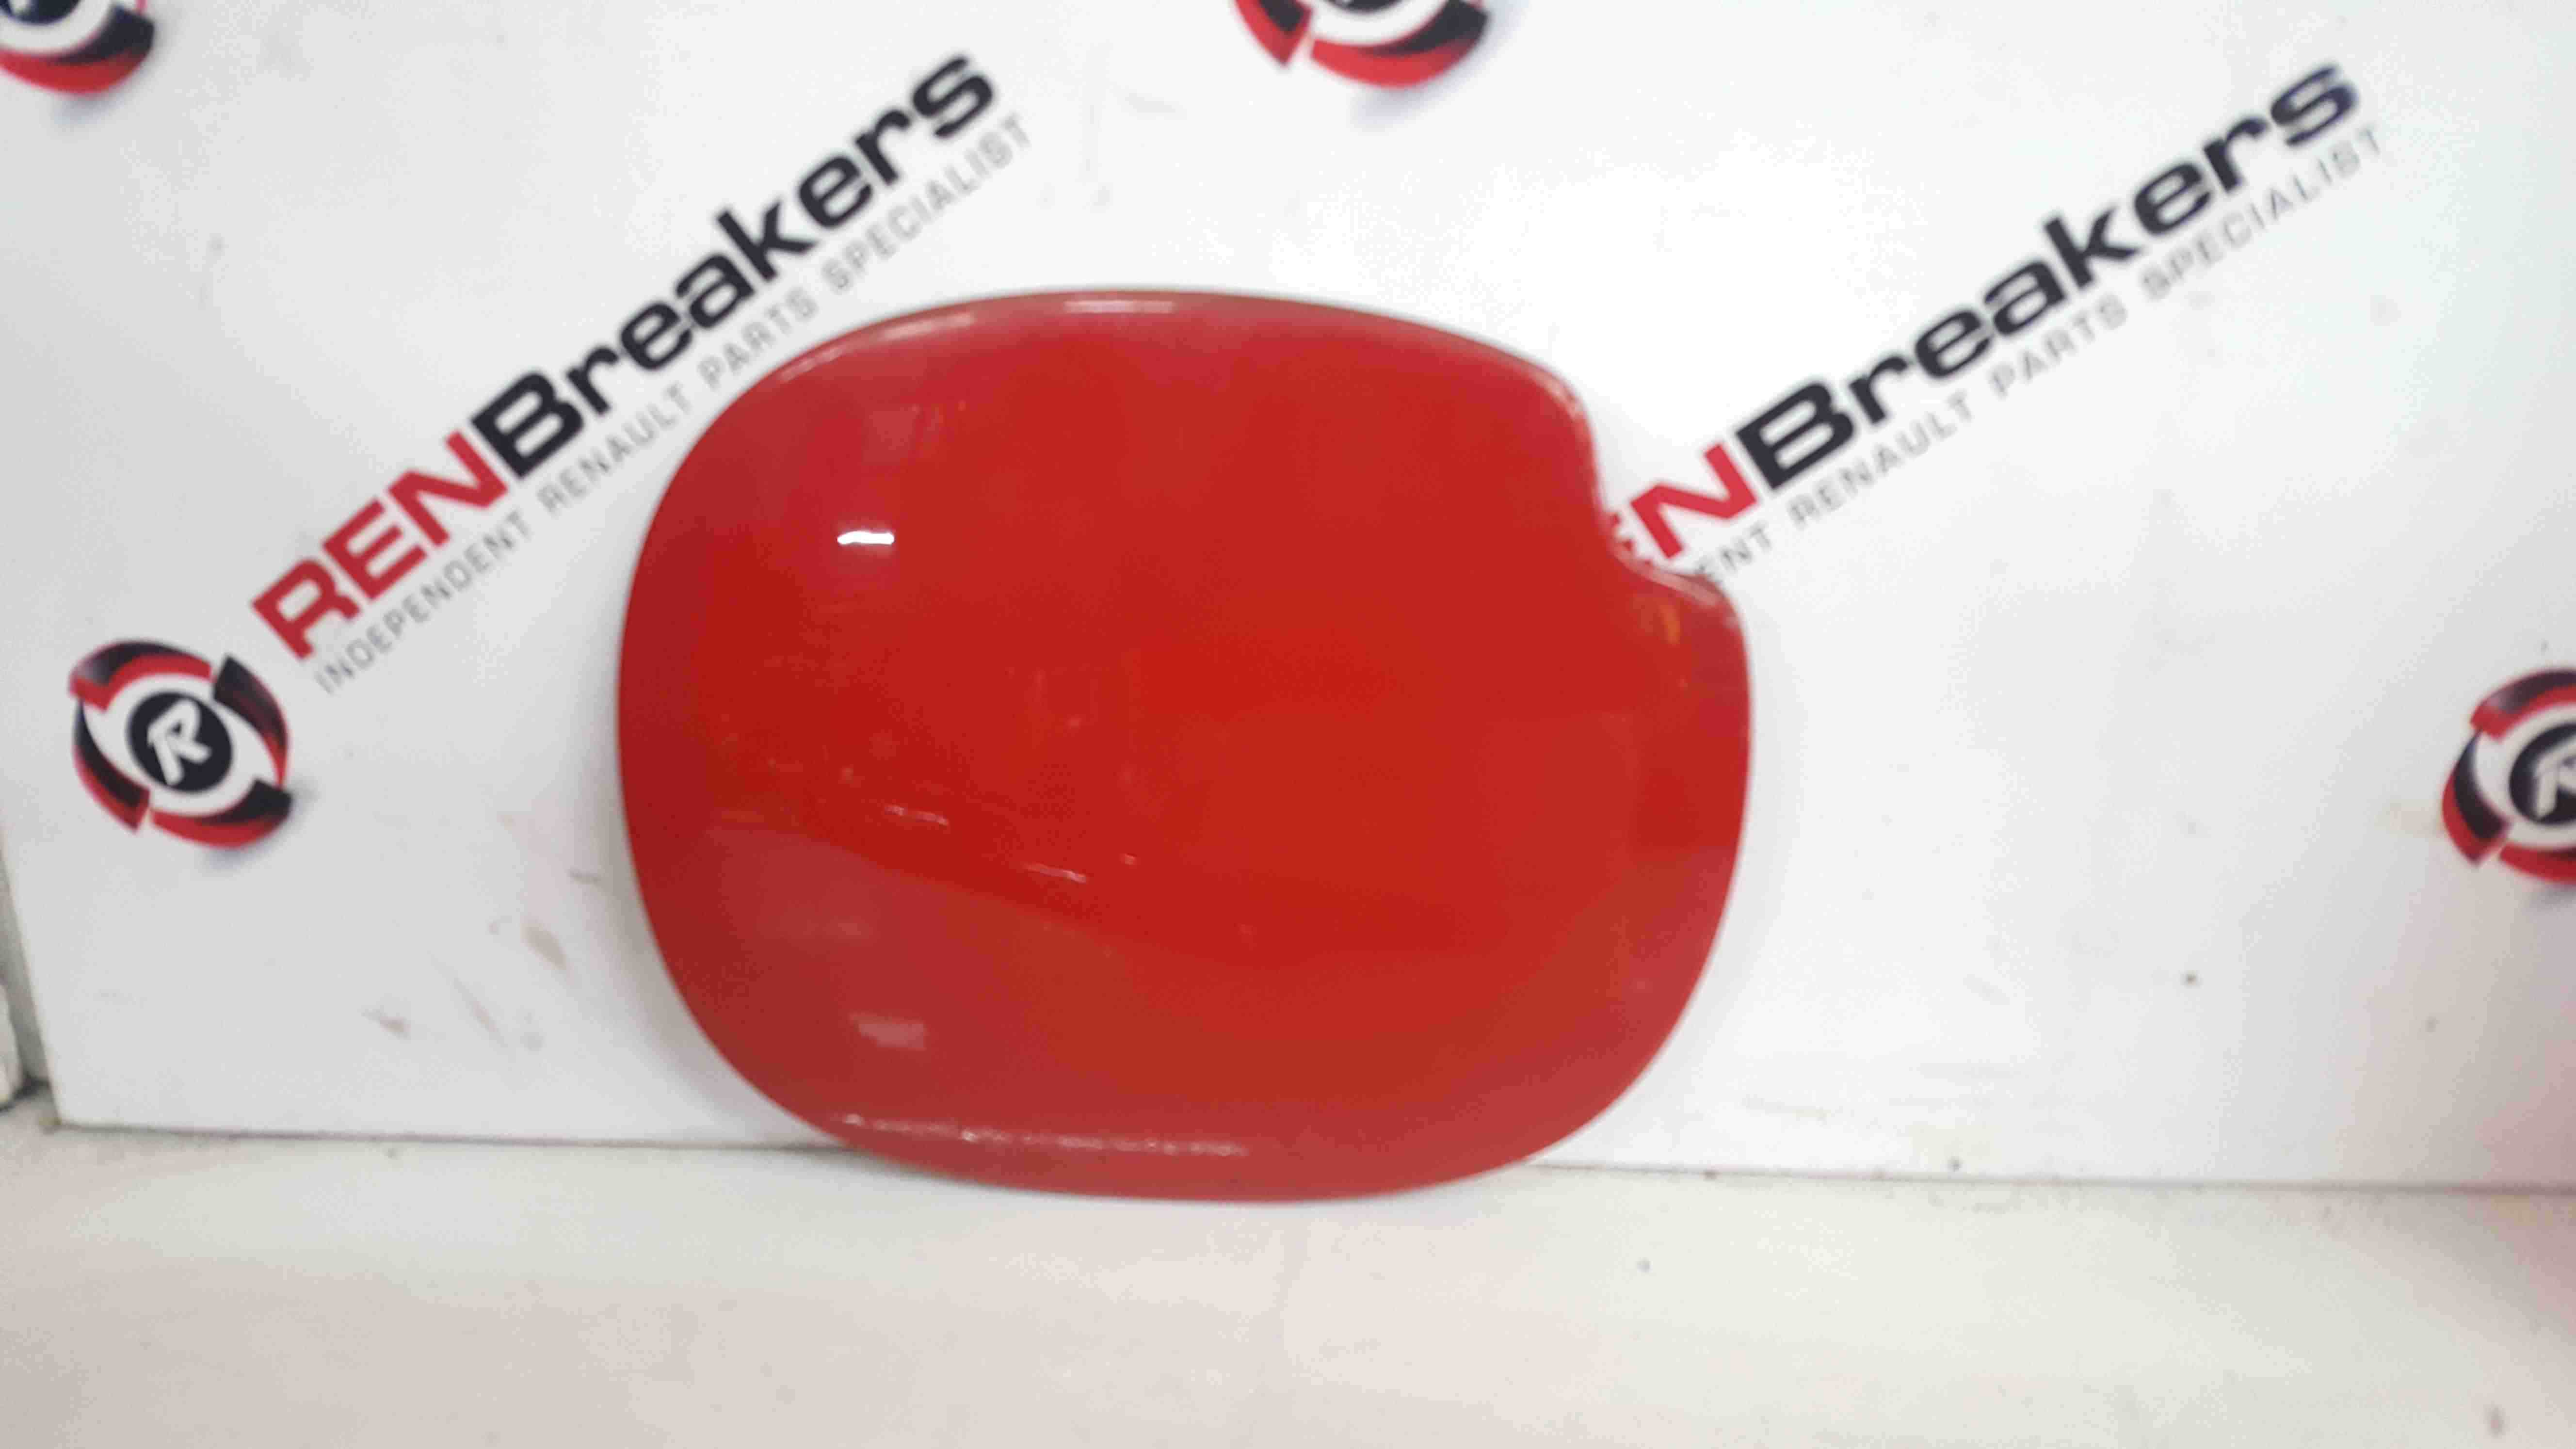 Renault Clio Sport Trophy MK2 2001-2005 Fuel Flap Cover Red OV727